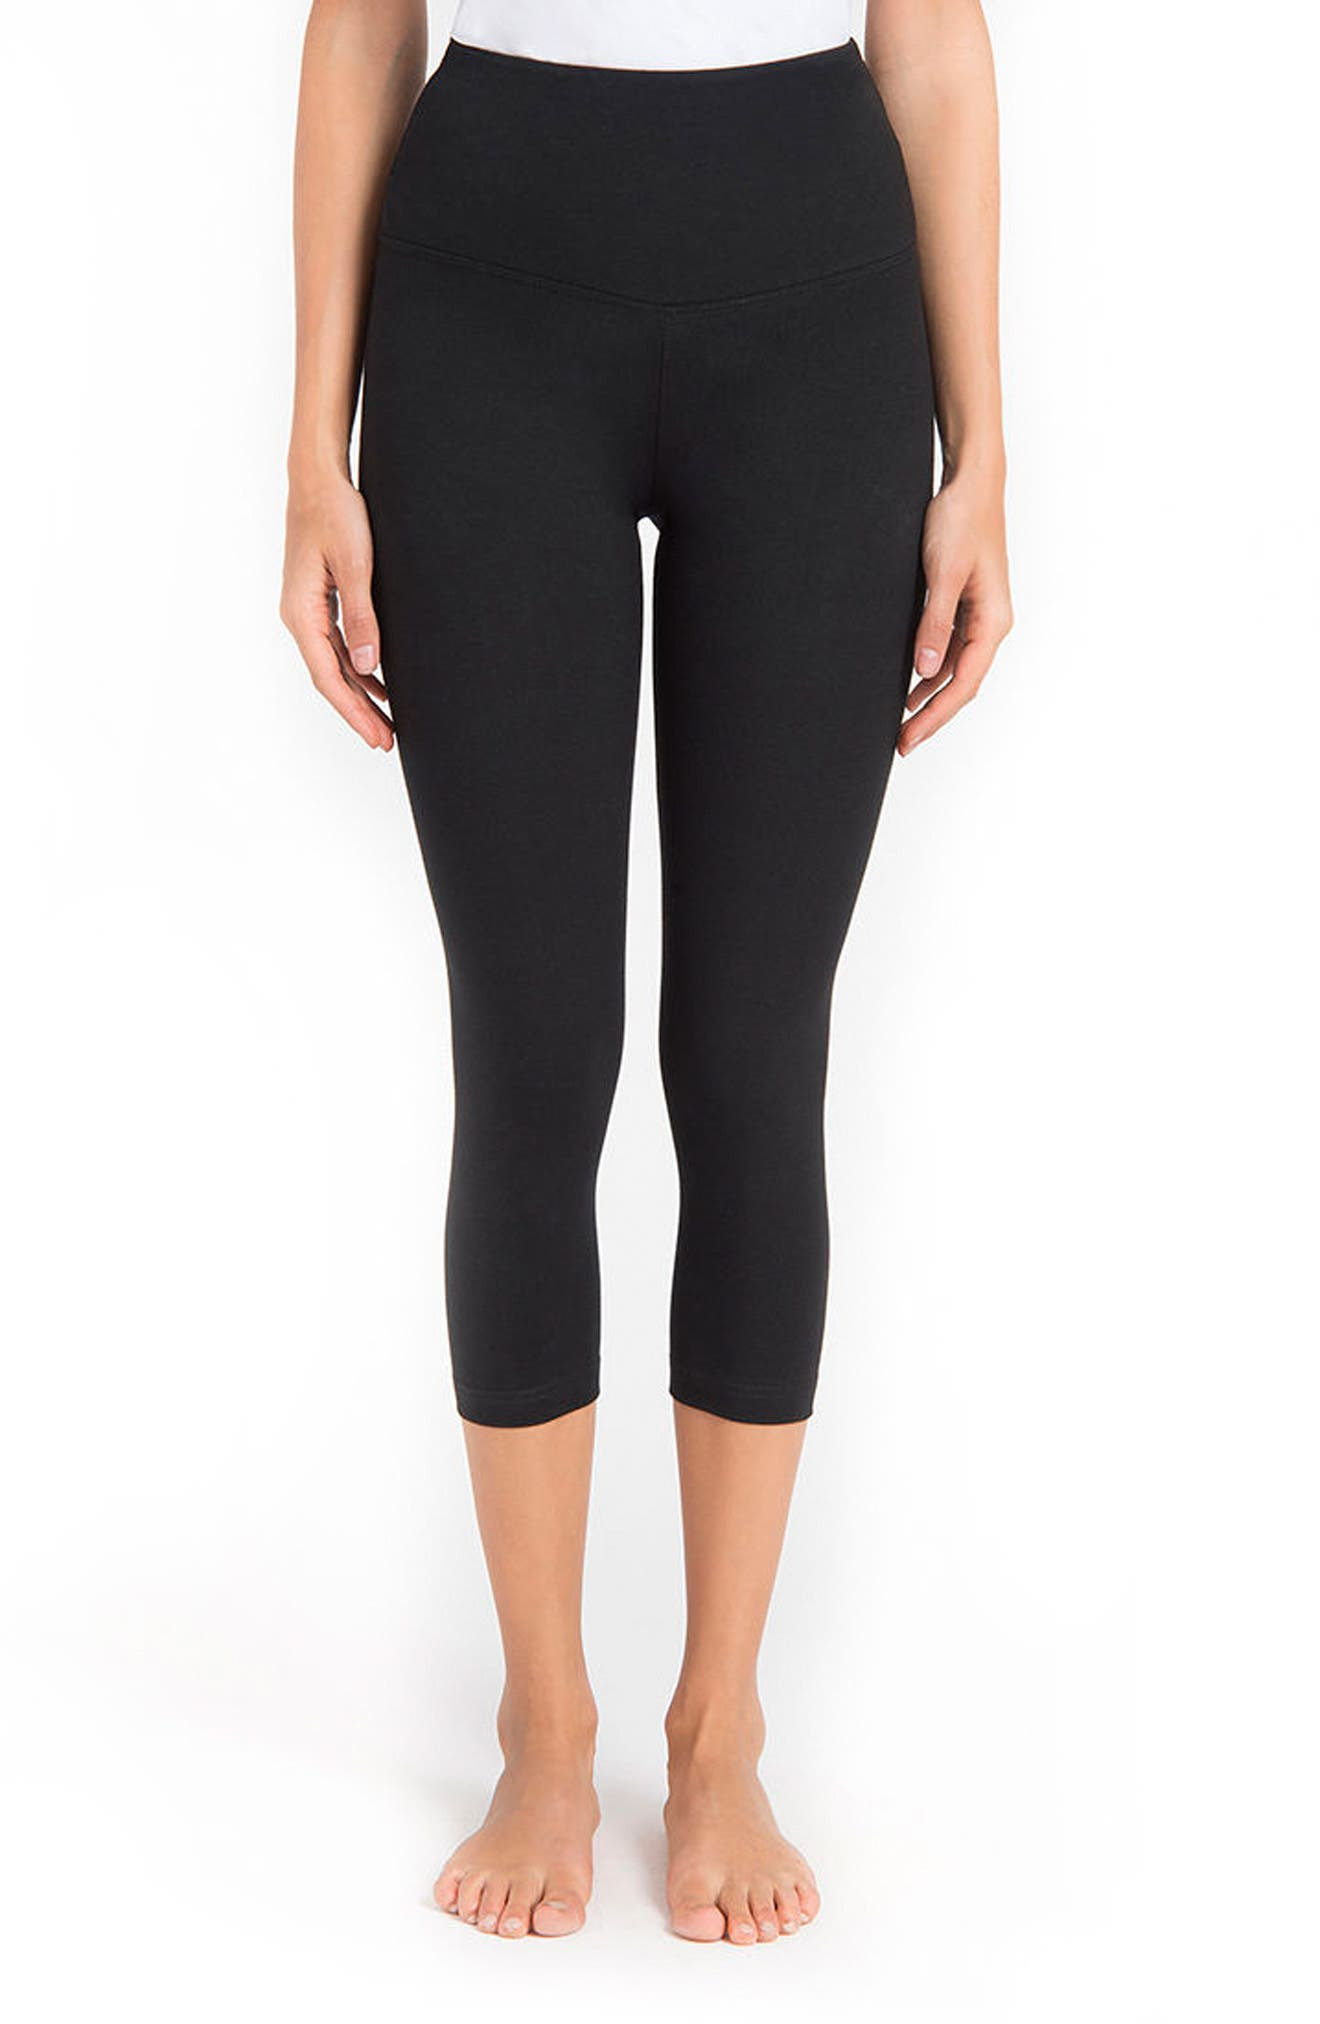 Alternate Image 1 Selected - Lyssé Control Top High Waist Capris